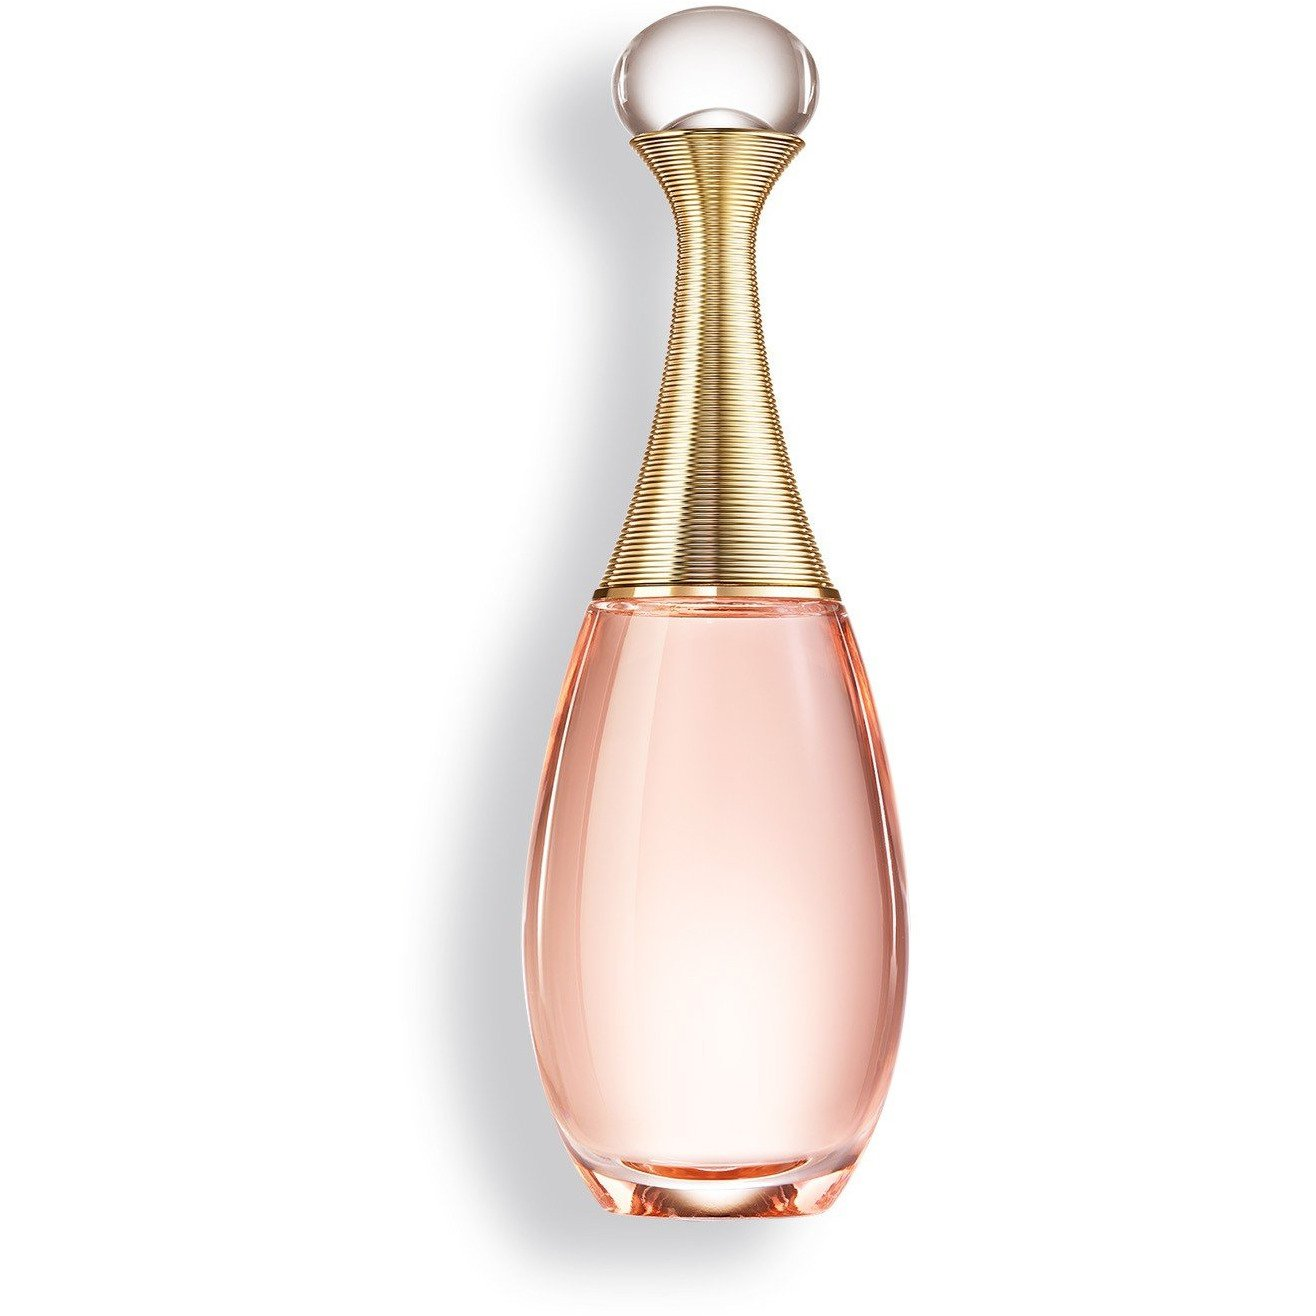 J'adore by Dior type perfume oil